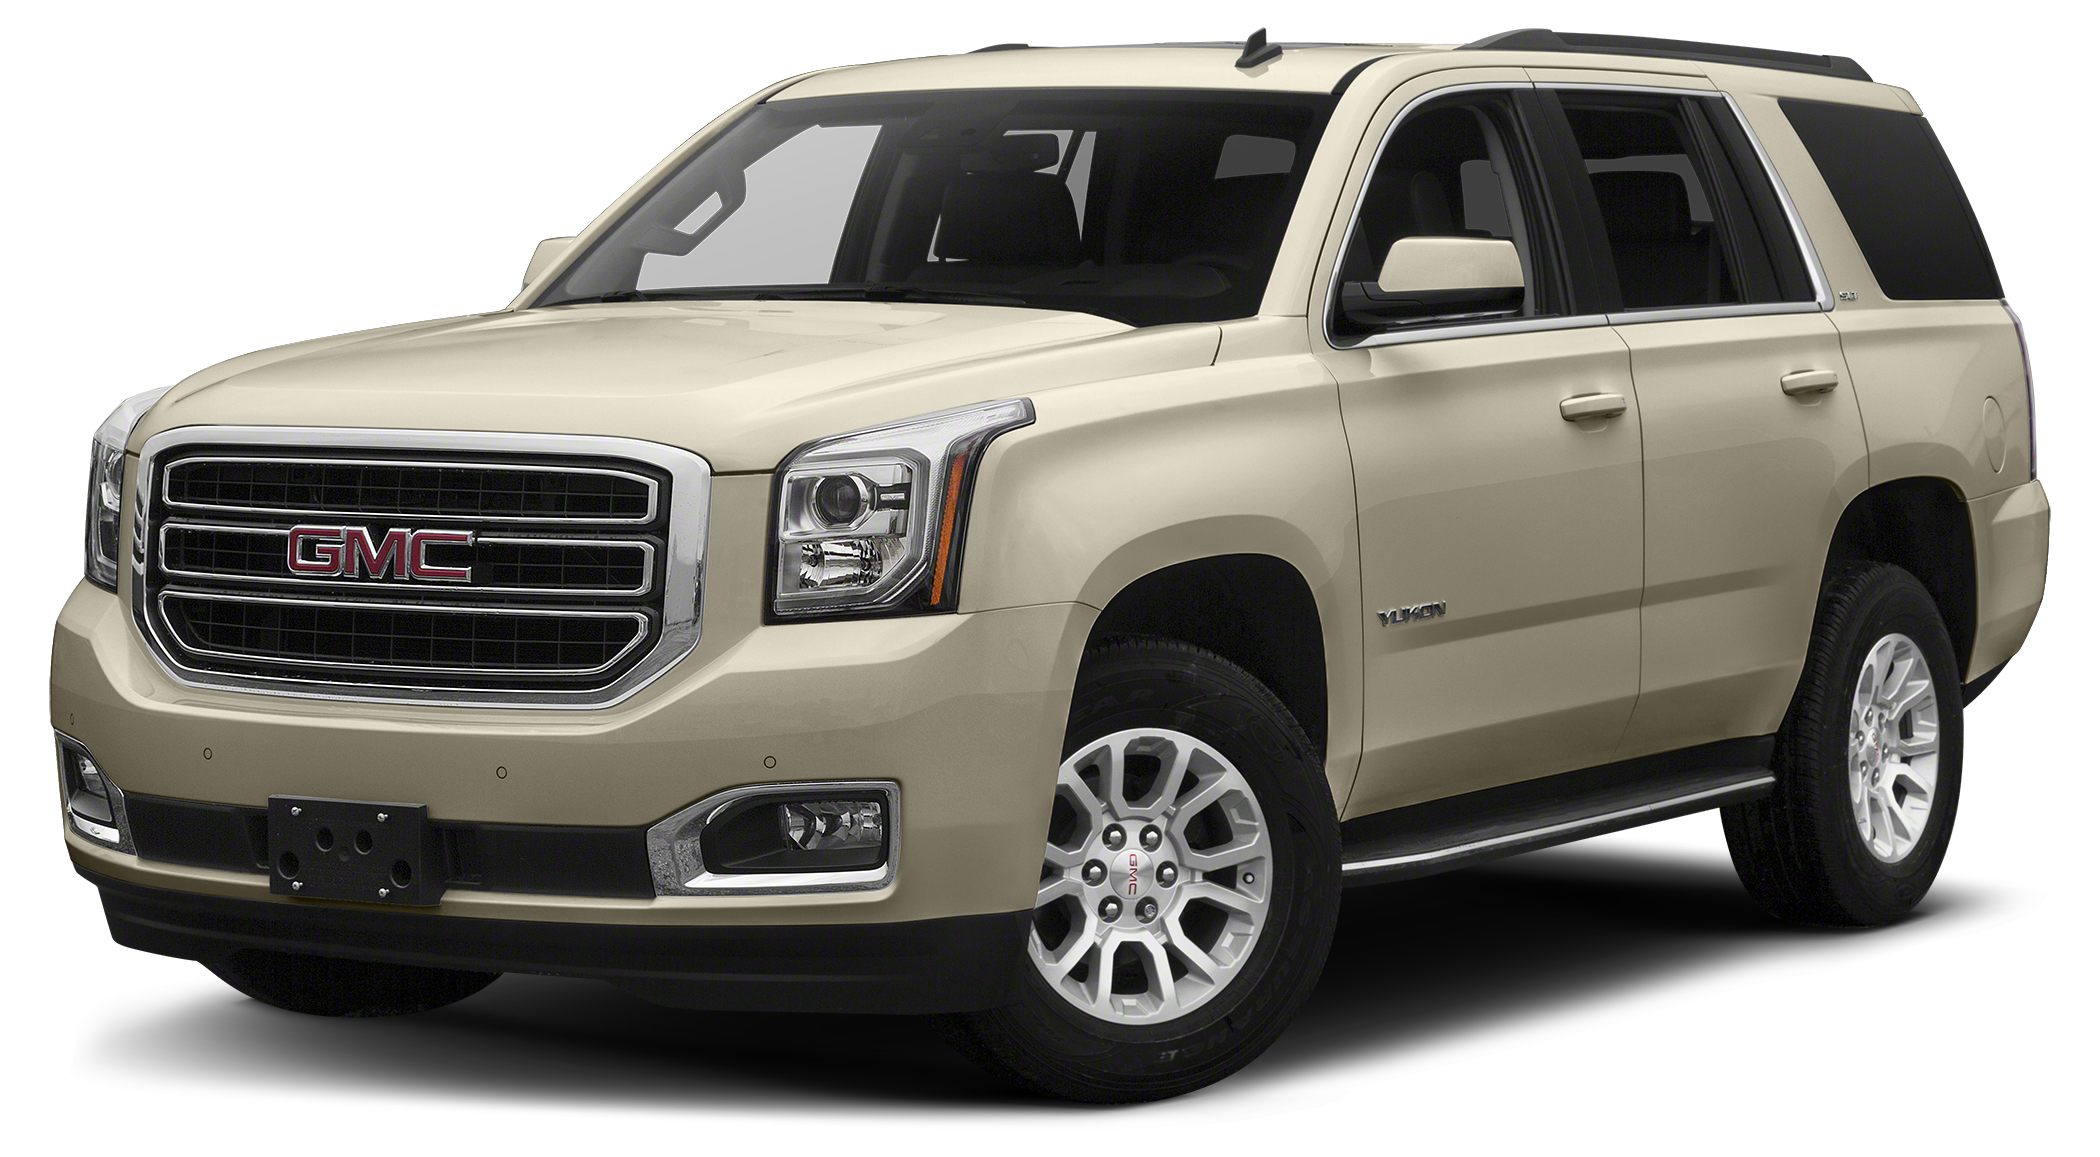 2015 GMC Yukon SLT Located at 55 Fortin Drive Woonsocket RI 02895 - Standard features include Leat